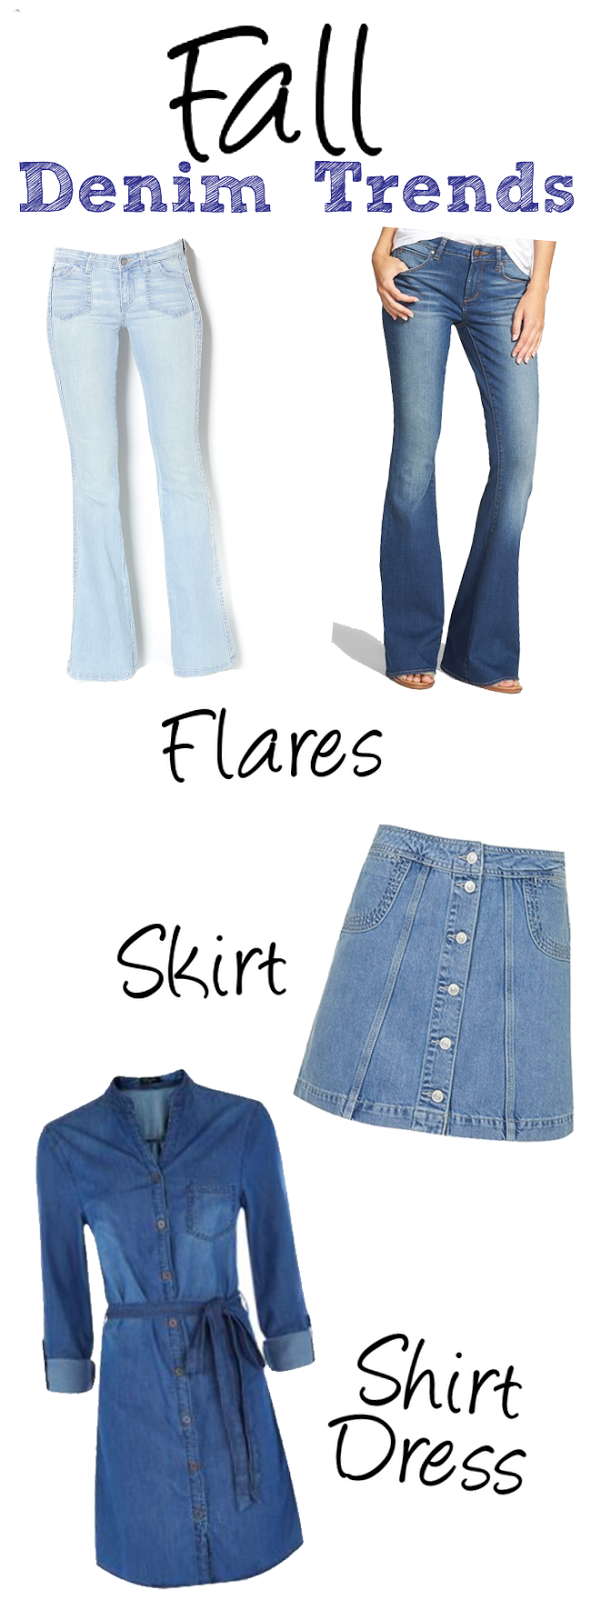 2015 Fall Denim Trends